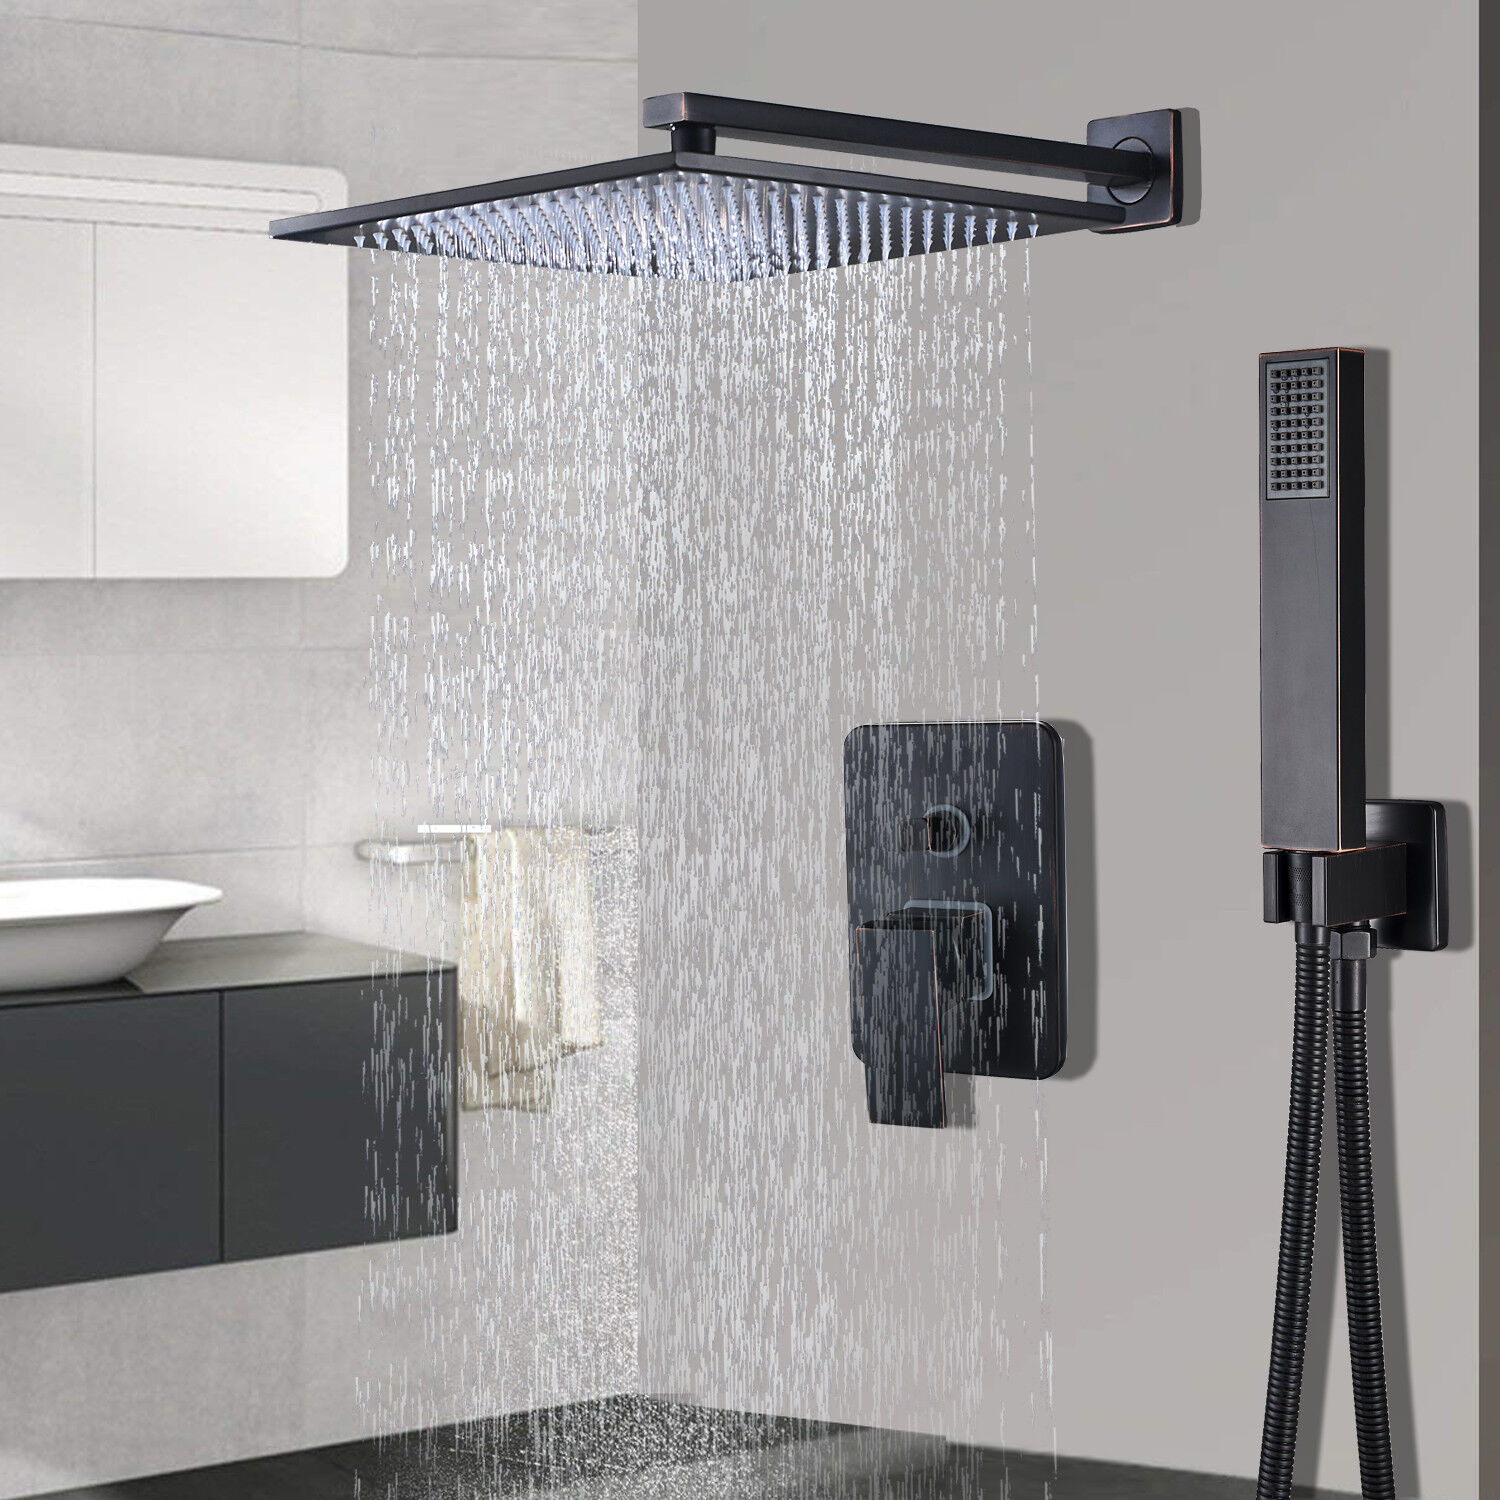 Shower Faucet Combo System 8 inch Rainfall With Hand Shower Oil Rubbed Bronze